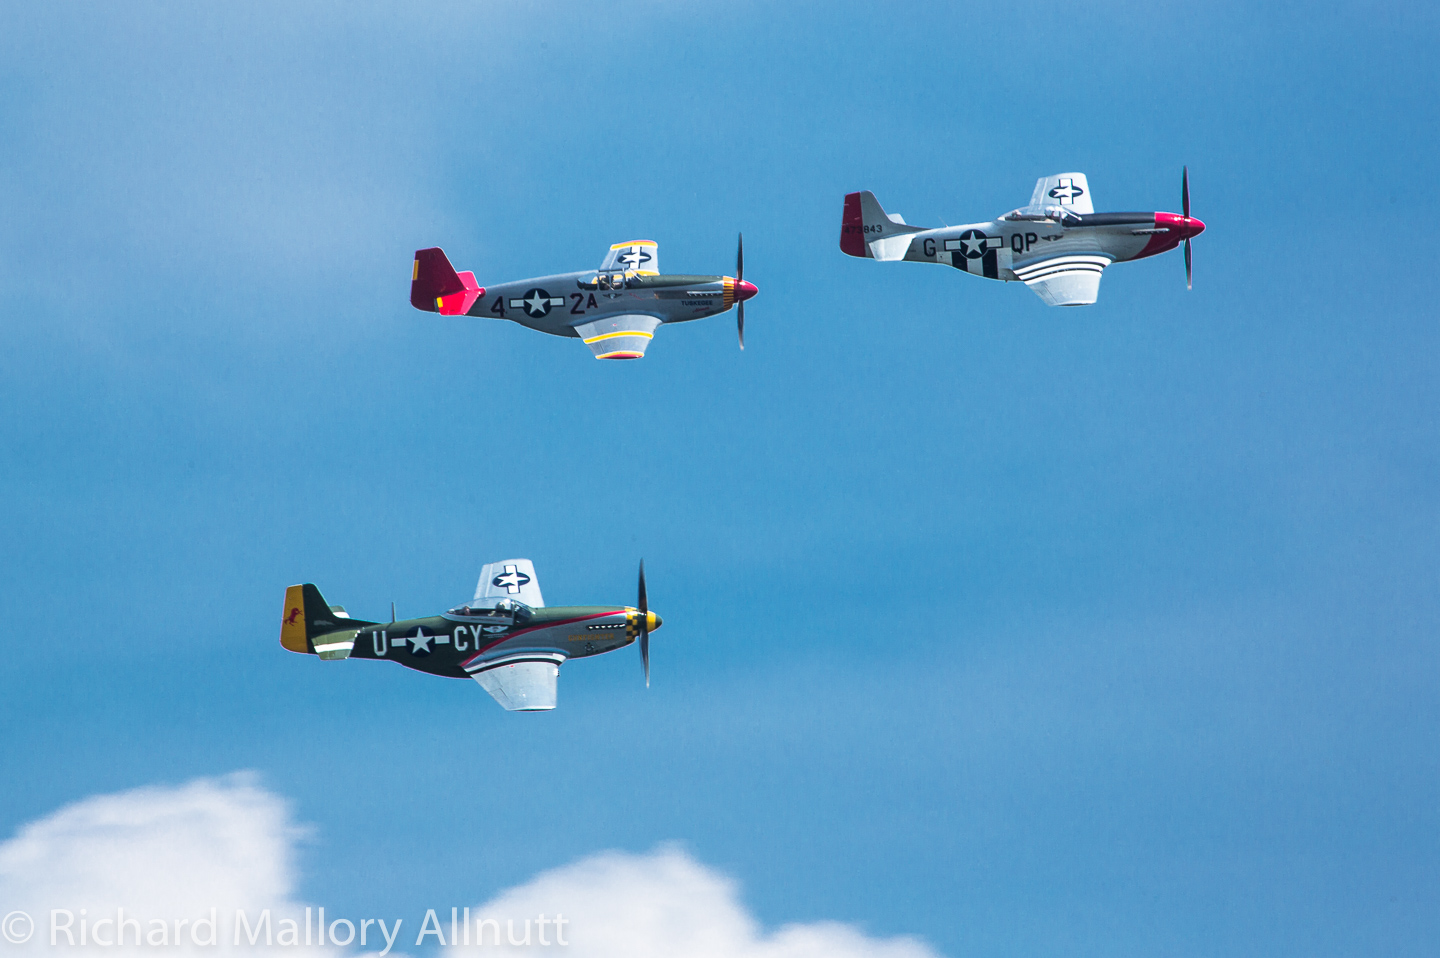 The Red Tail Squadron's P-51C (center) in formation with the CAF's two other Mustangs as they are about to make the turn over Washington, DC for the Arsenal of Democracy Flyover. (photo by Richard Mallory Allnutt)